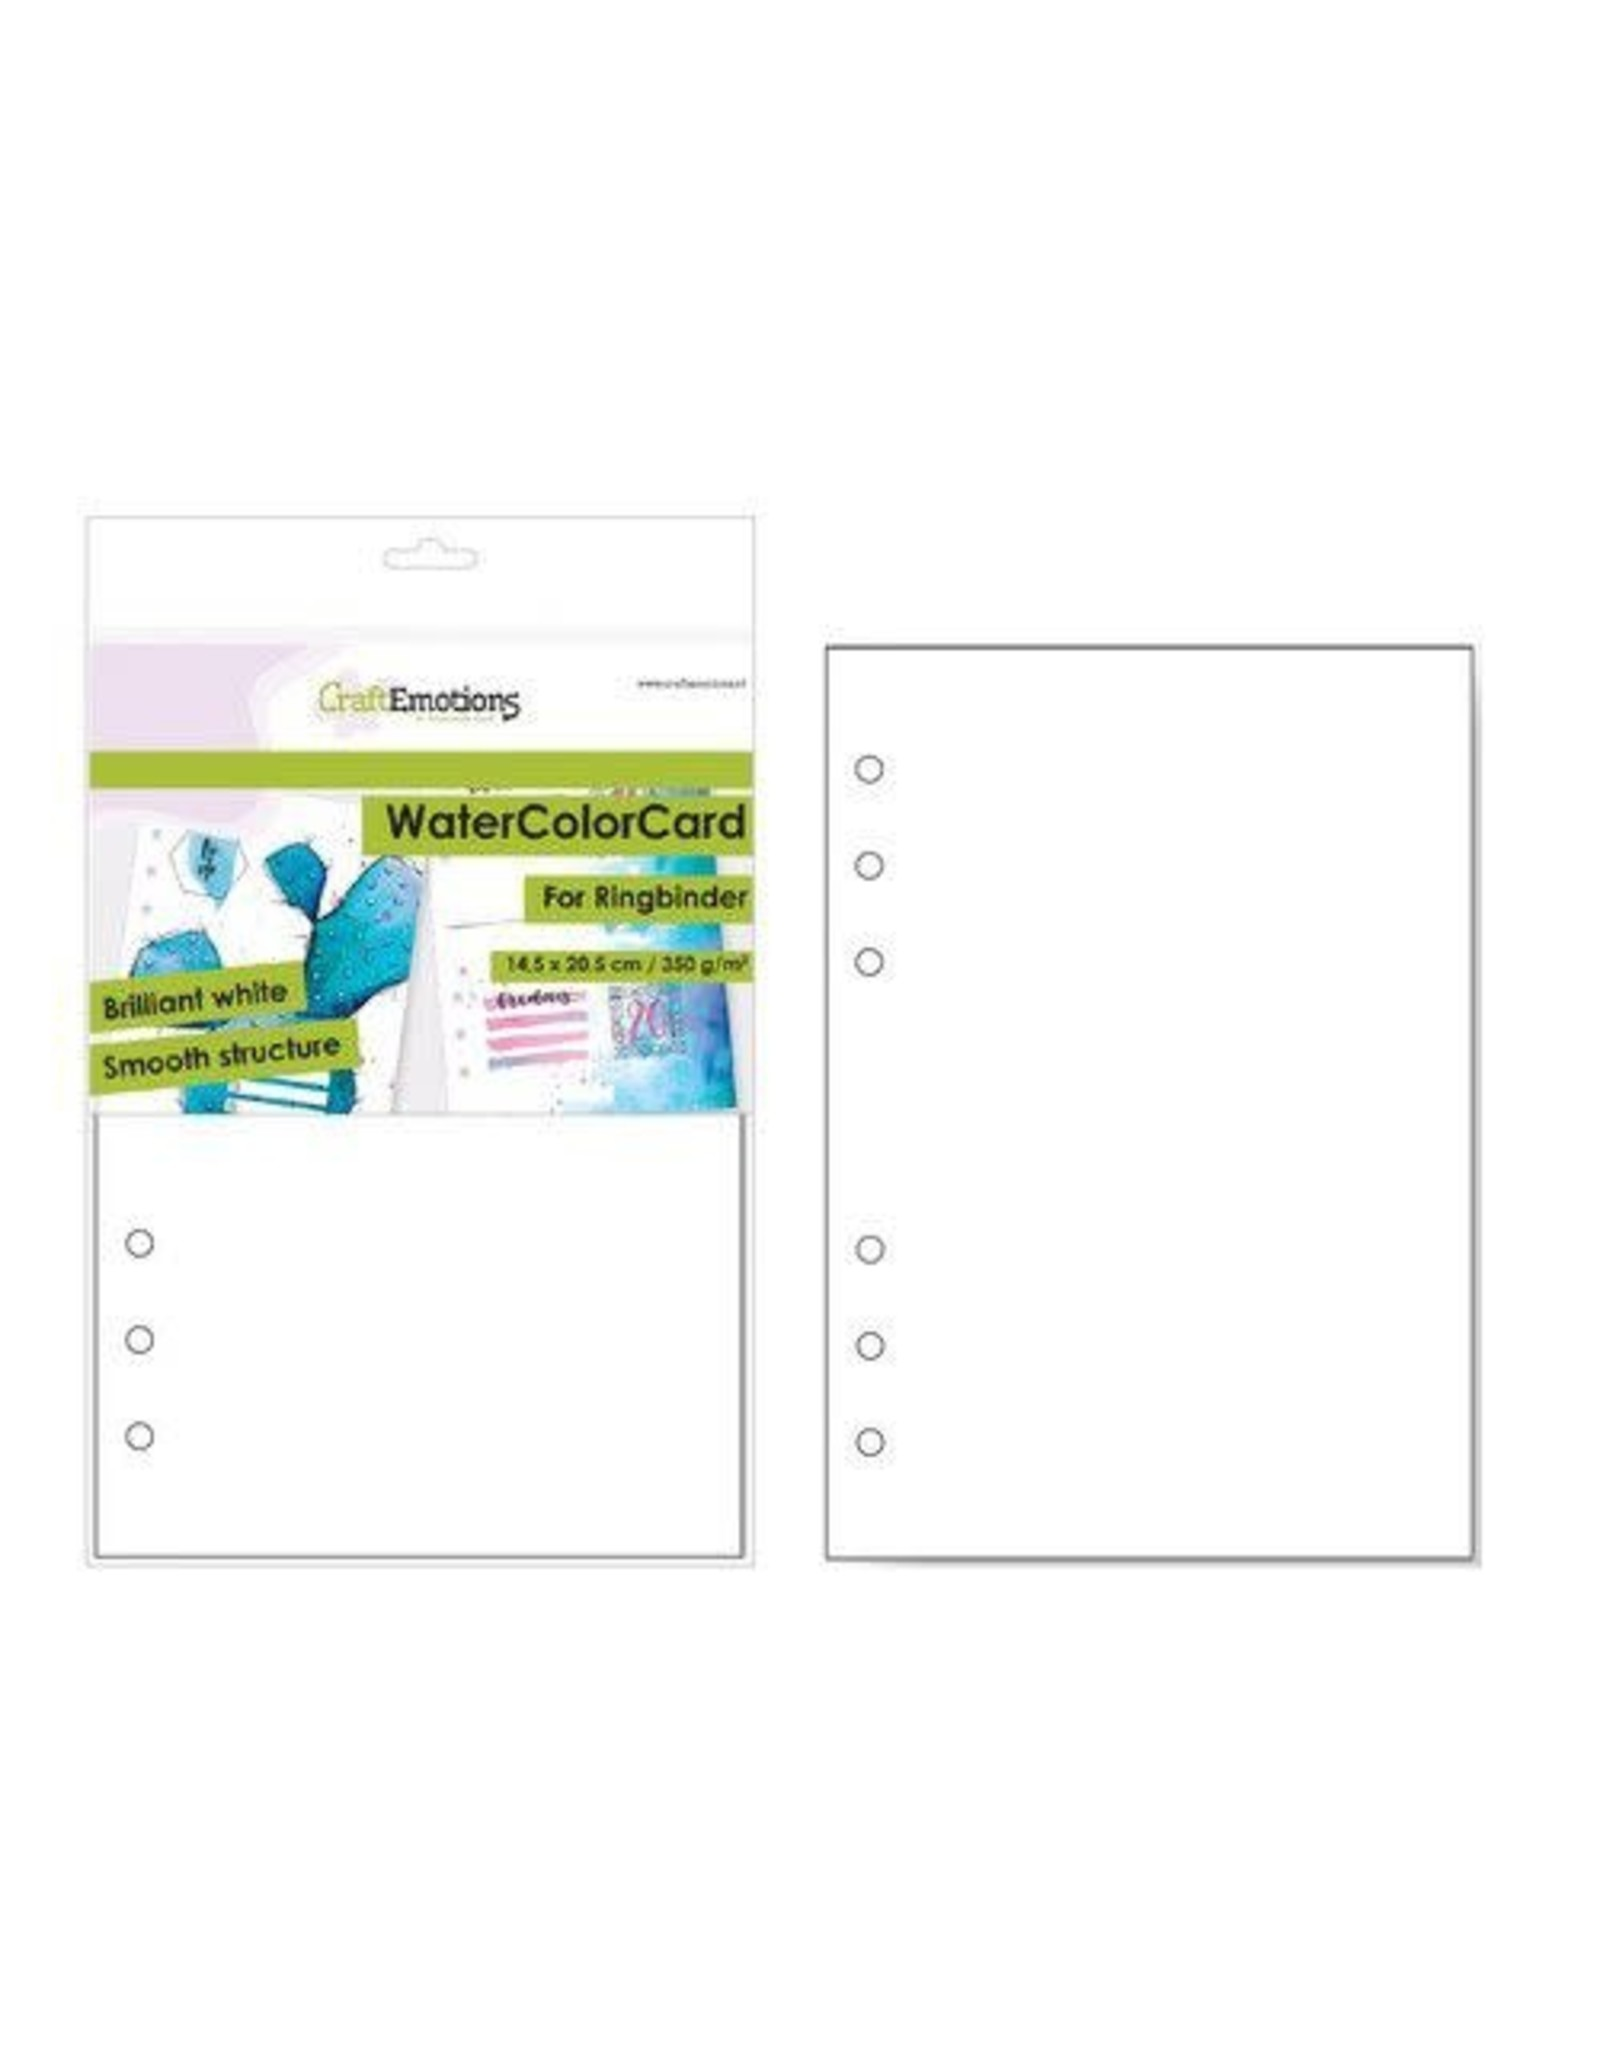 Craft Emotions CraftEmotions WaterColorCard - bril. Ringband wit 10 vl 14,5x20,5cm - 350 gr - 6 Ring A5